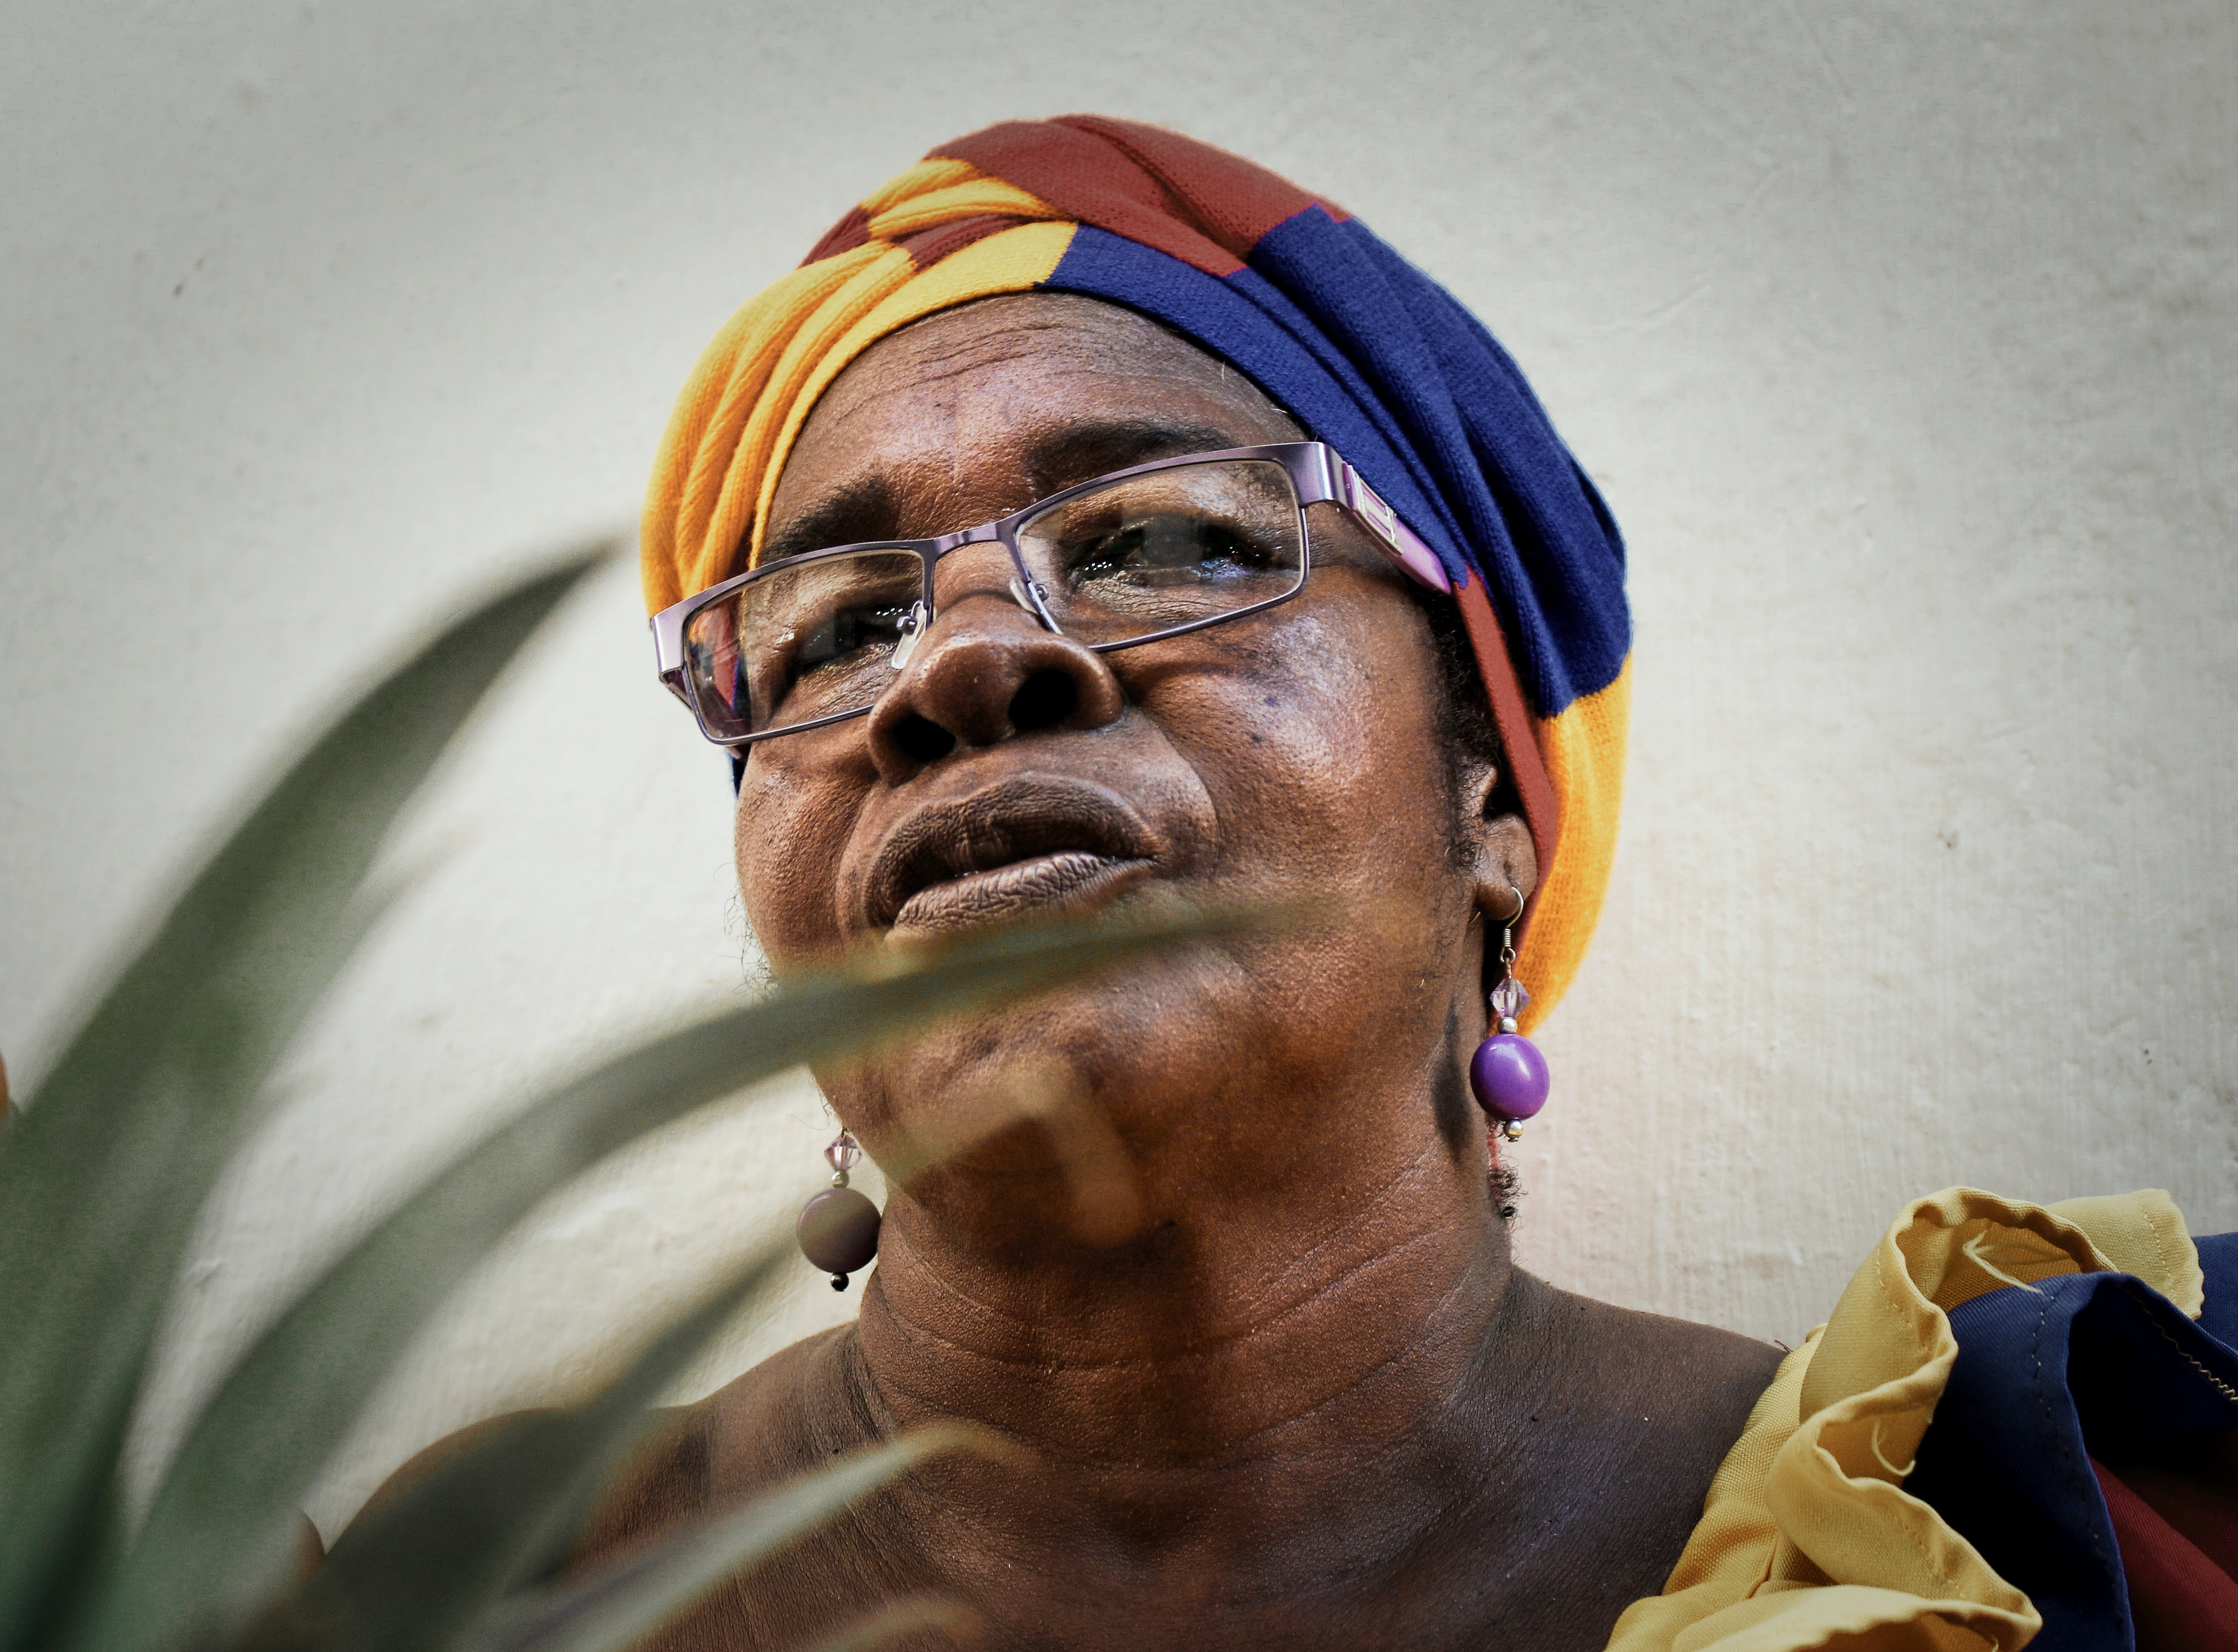 woman wearing yellow, blue, and brown headdress and eyeglasses